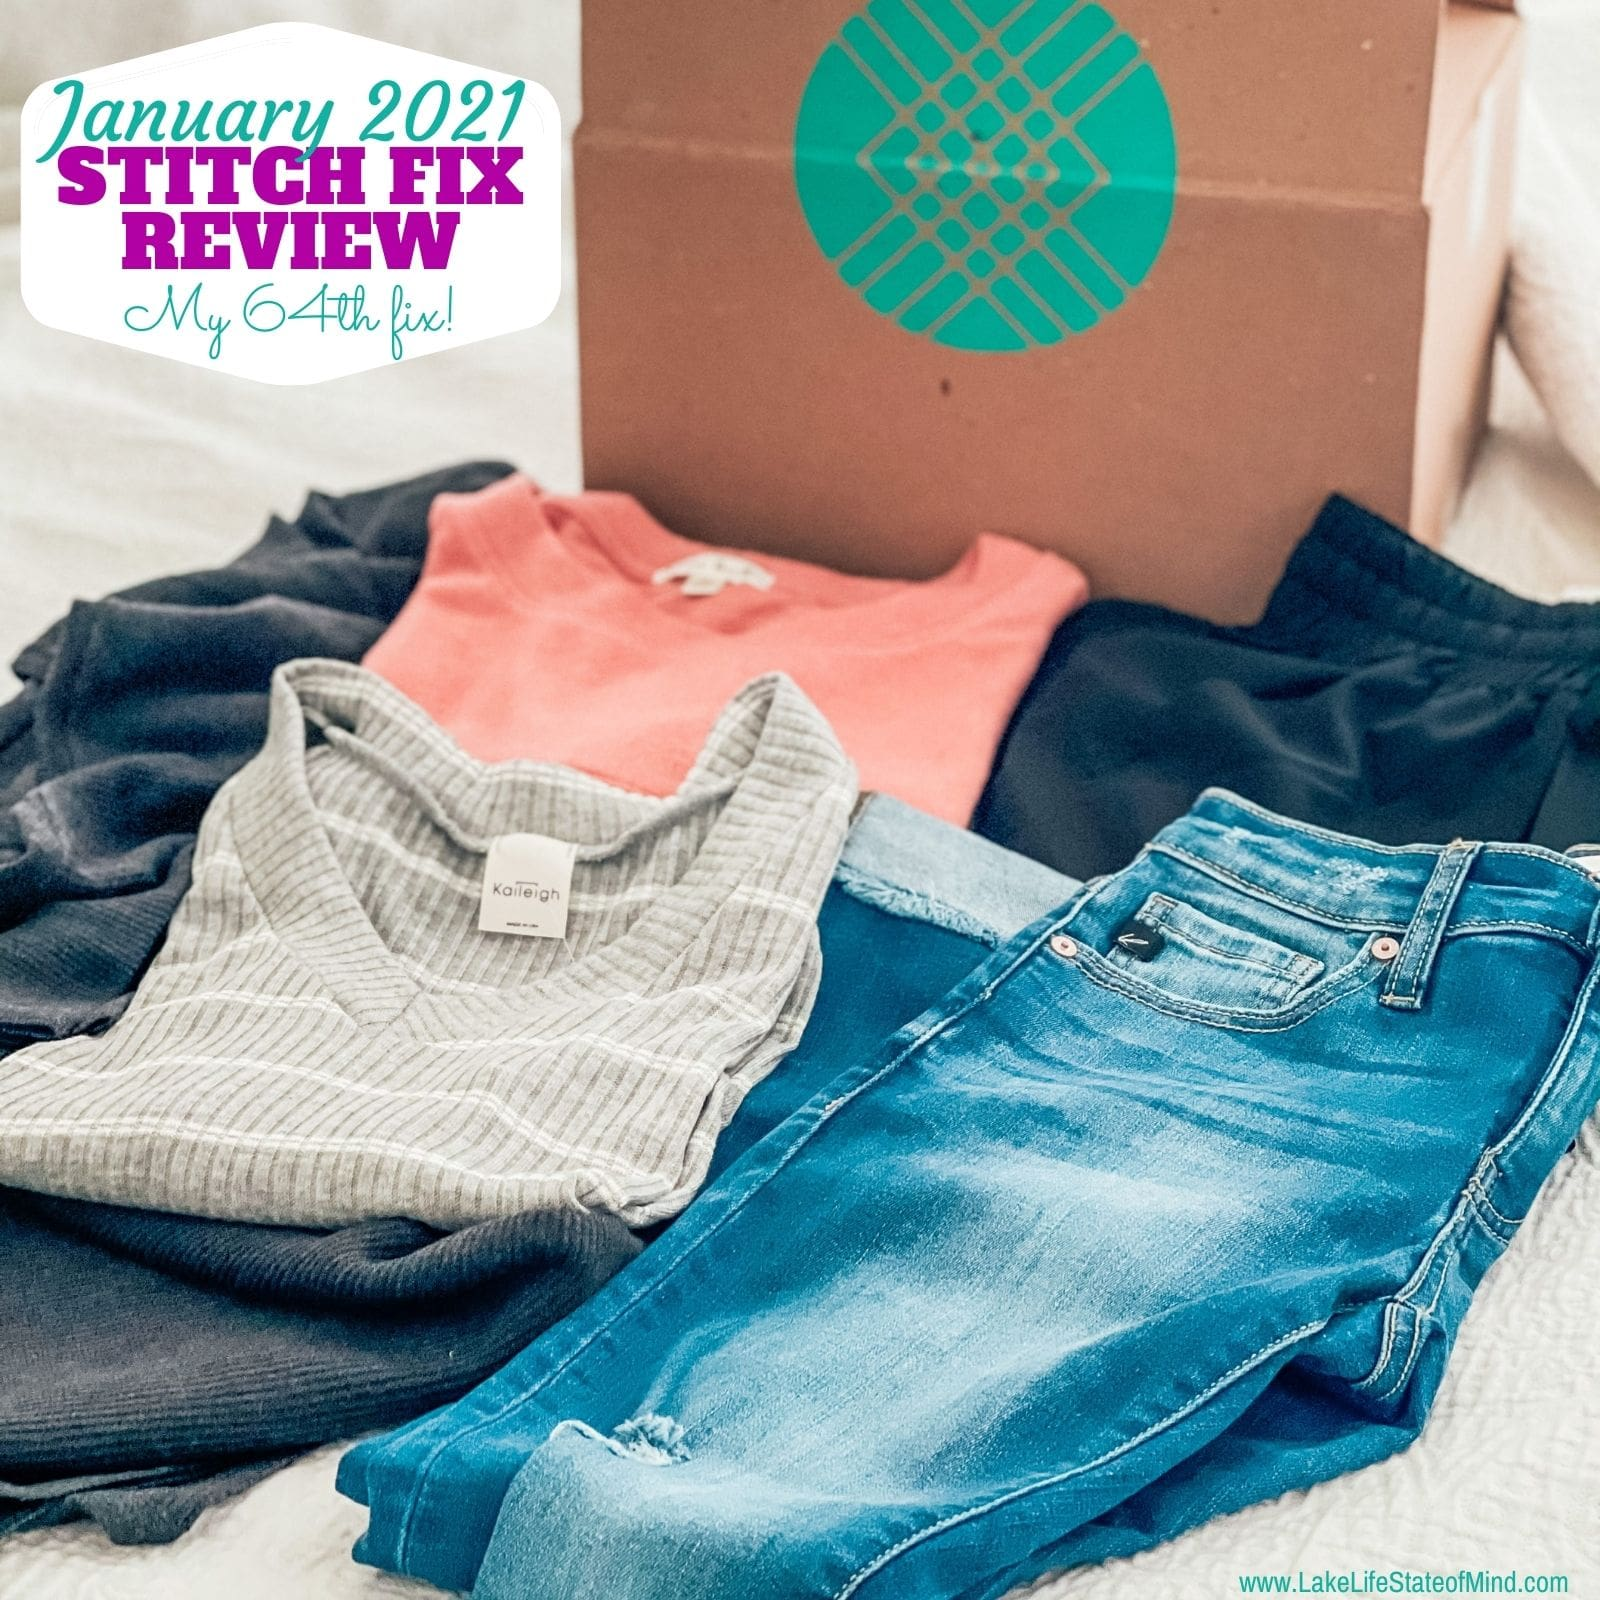 Stitch Fix Box Review for January 2021